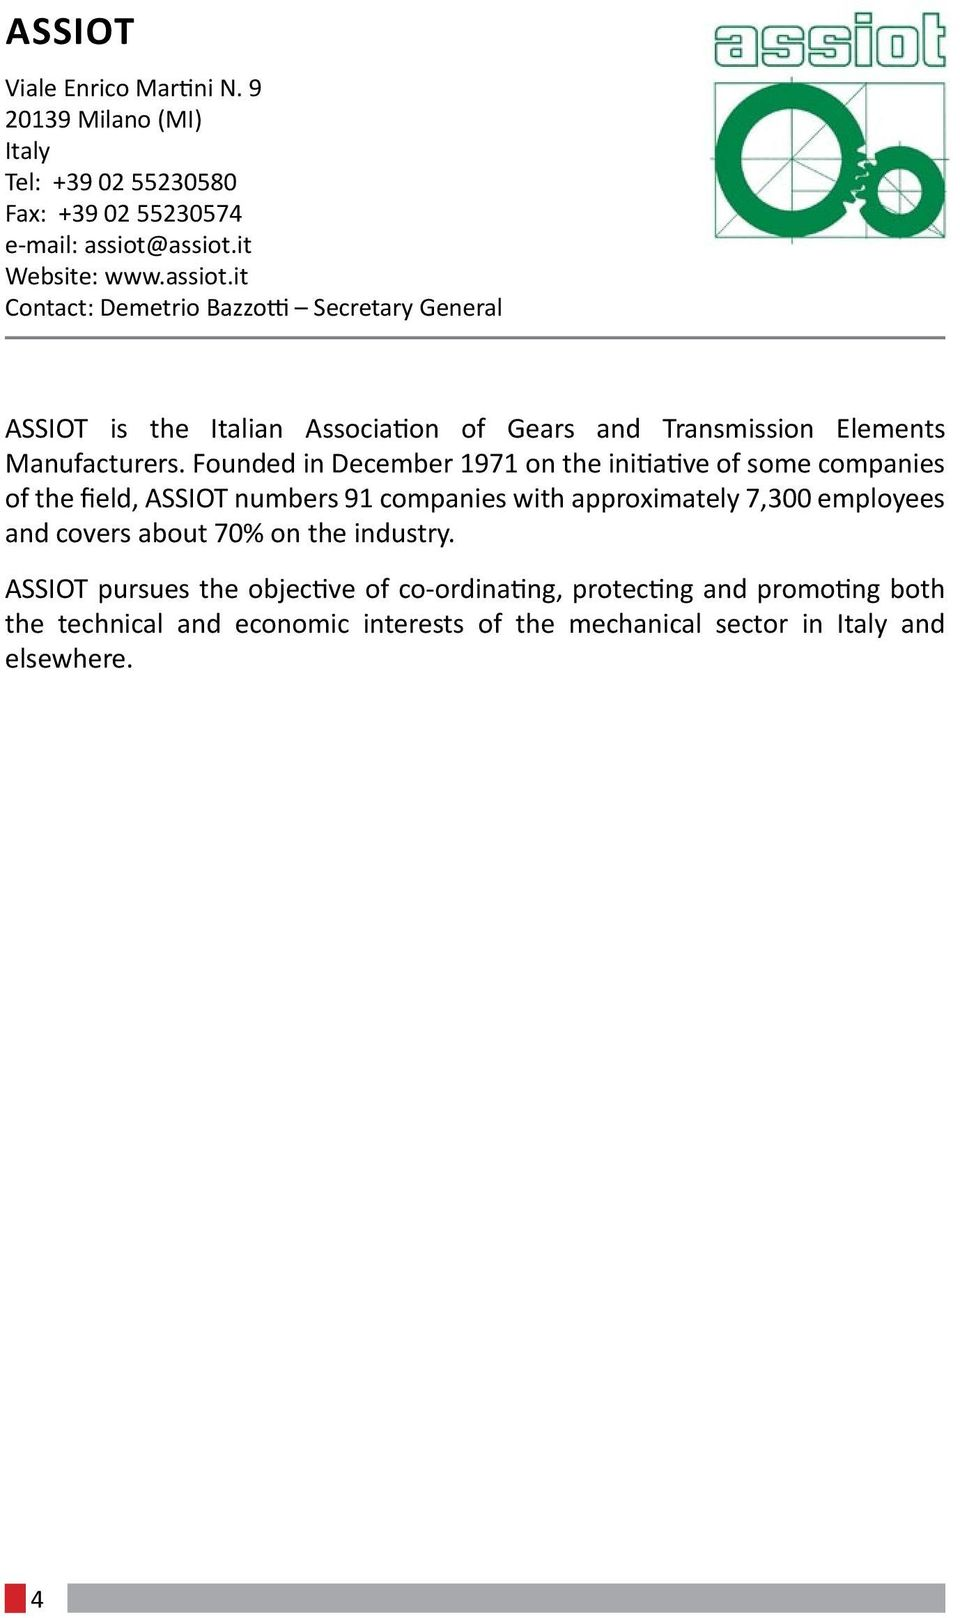 Founded in December 1971 on the initiative of some companies of the field, ASSIOT numbers 91 companies with approximately 7,300 employees and covers